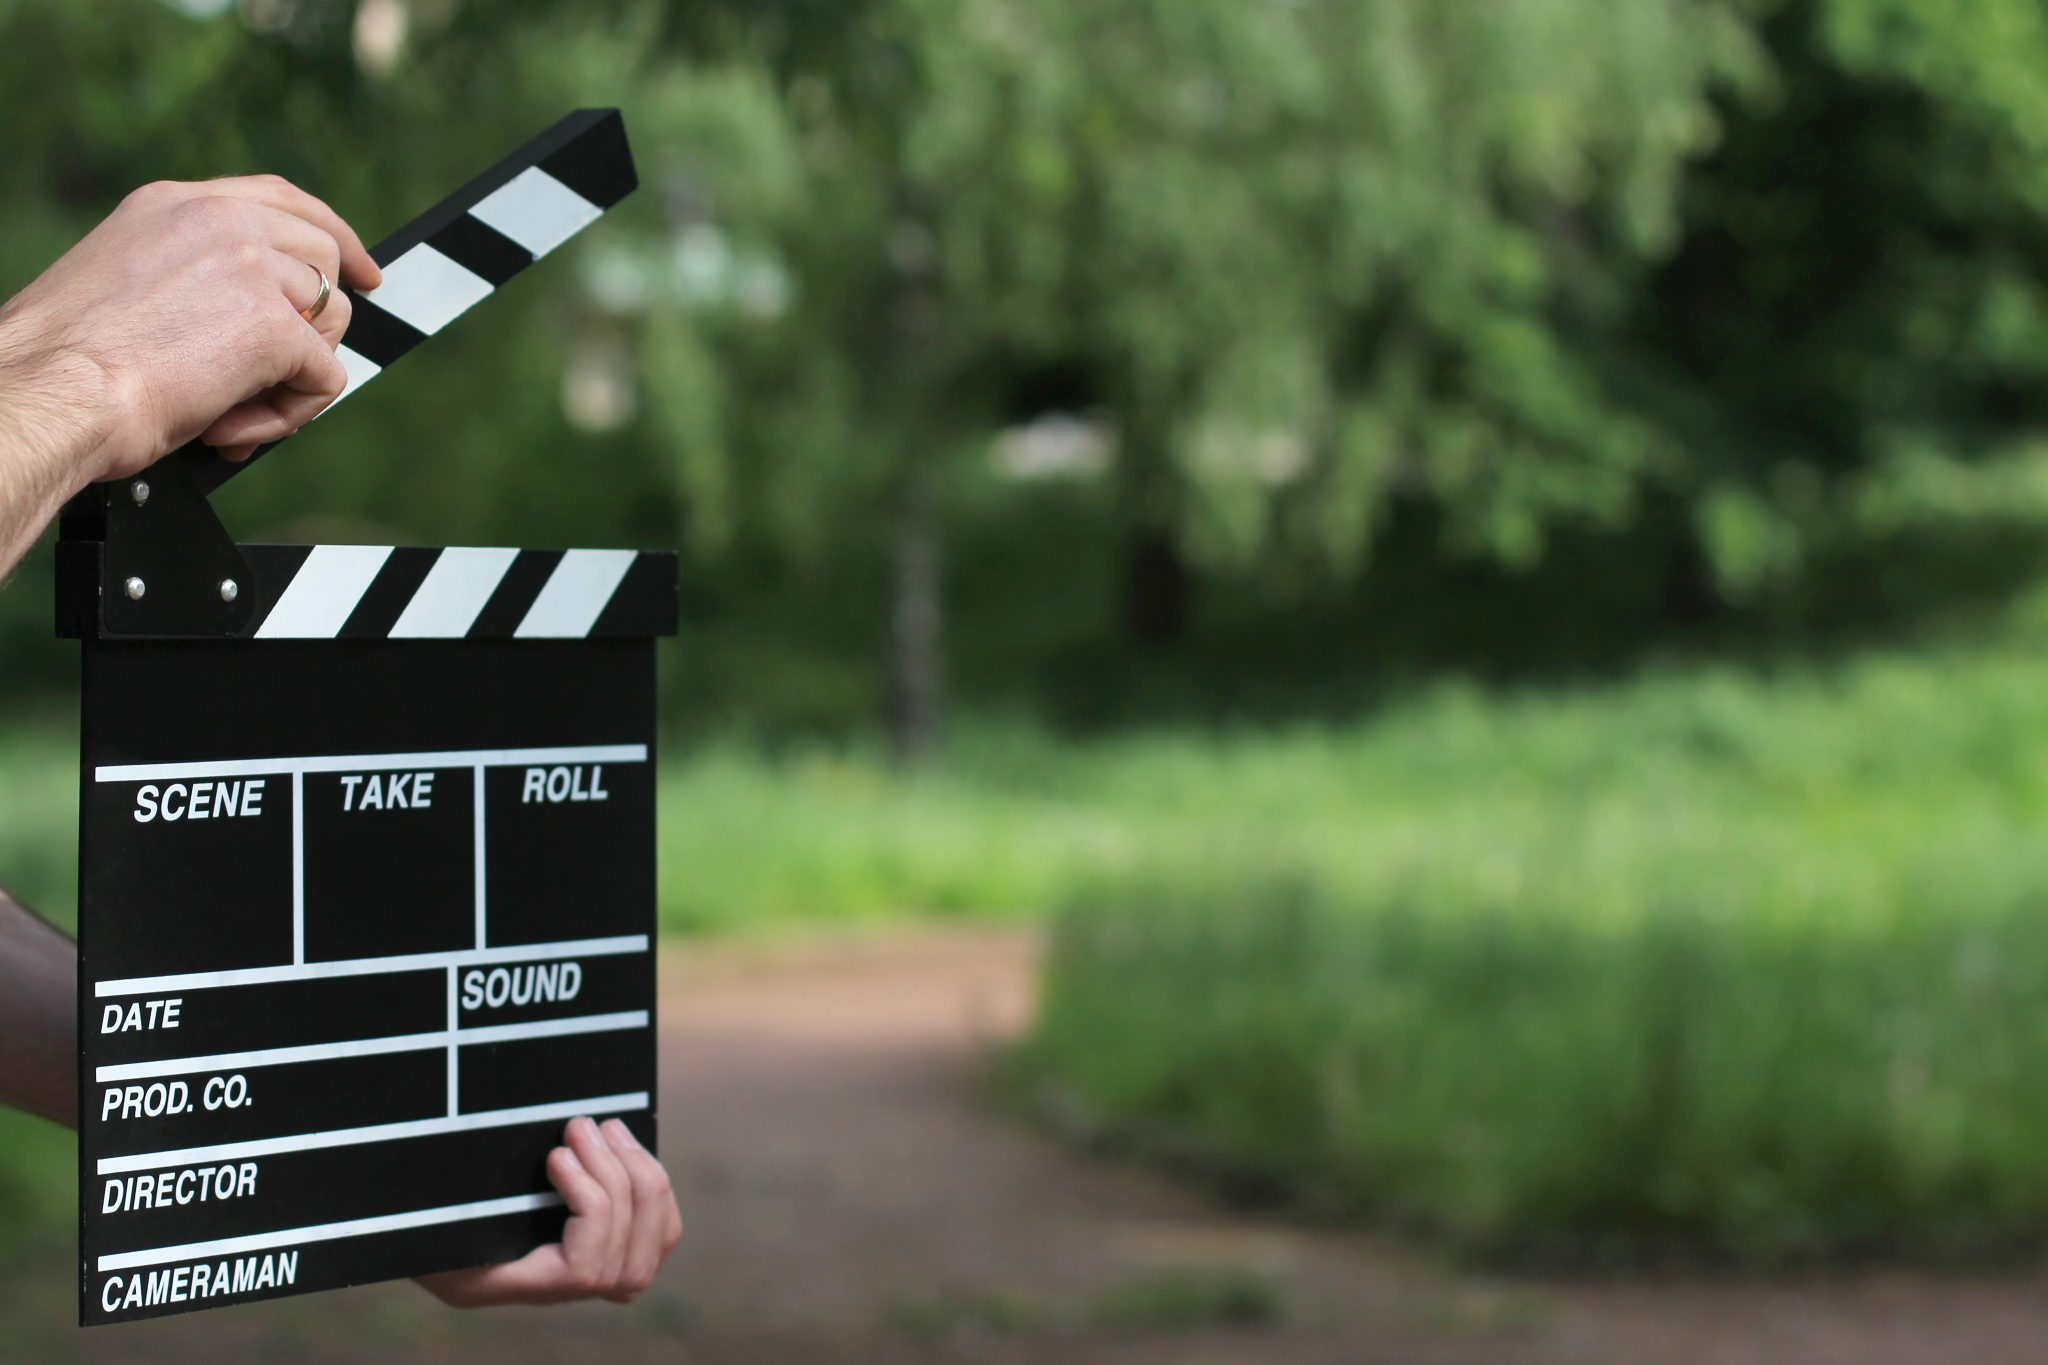 4 Simple Ways To Construct Your Videos